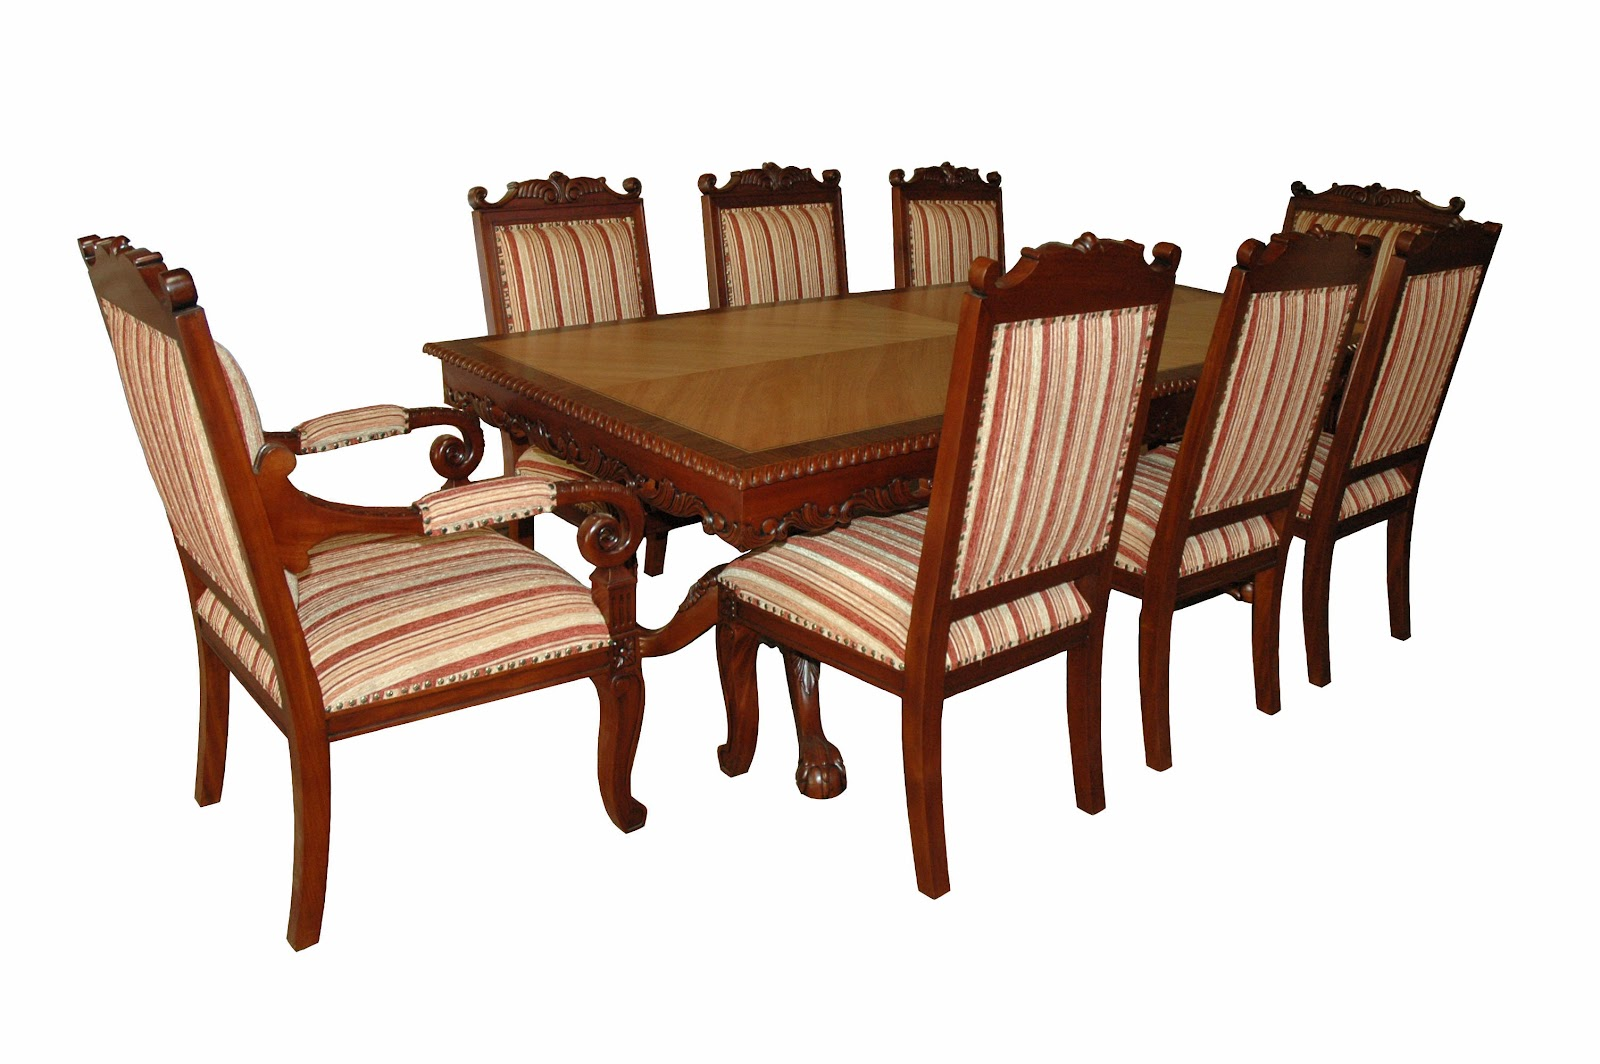 Indah Furniture Jepara Dining Set Indah Furniture Jepara